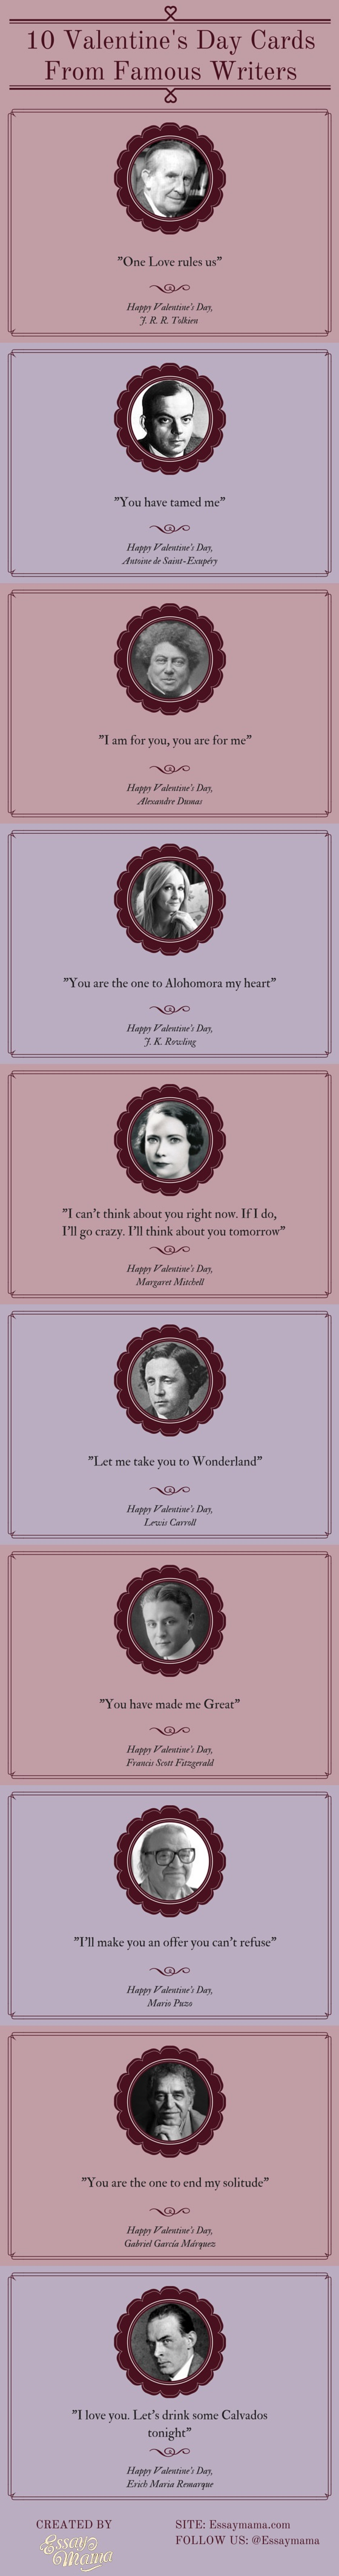 Valentine's Day Cards From Famous Writers